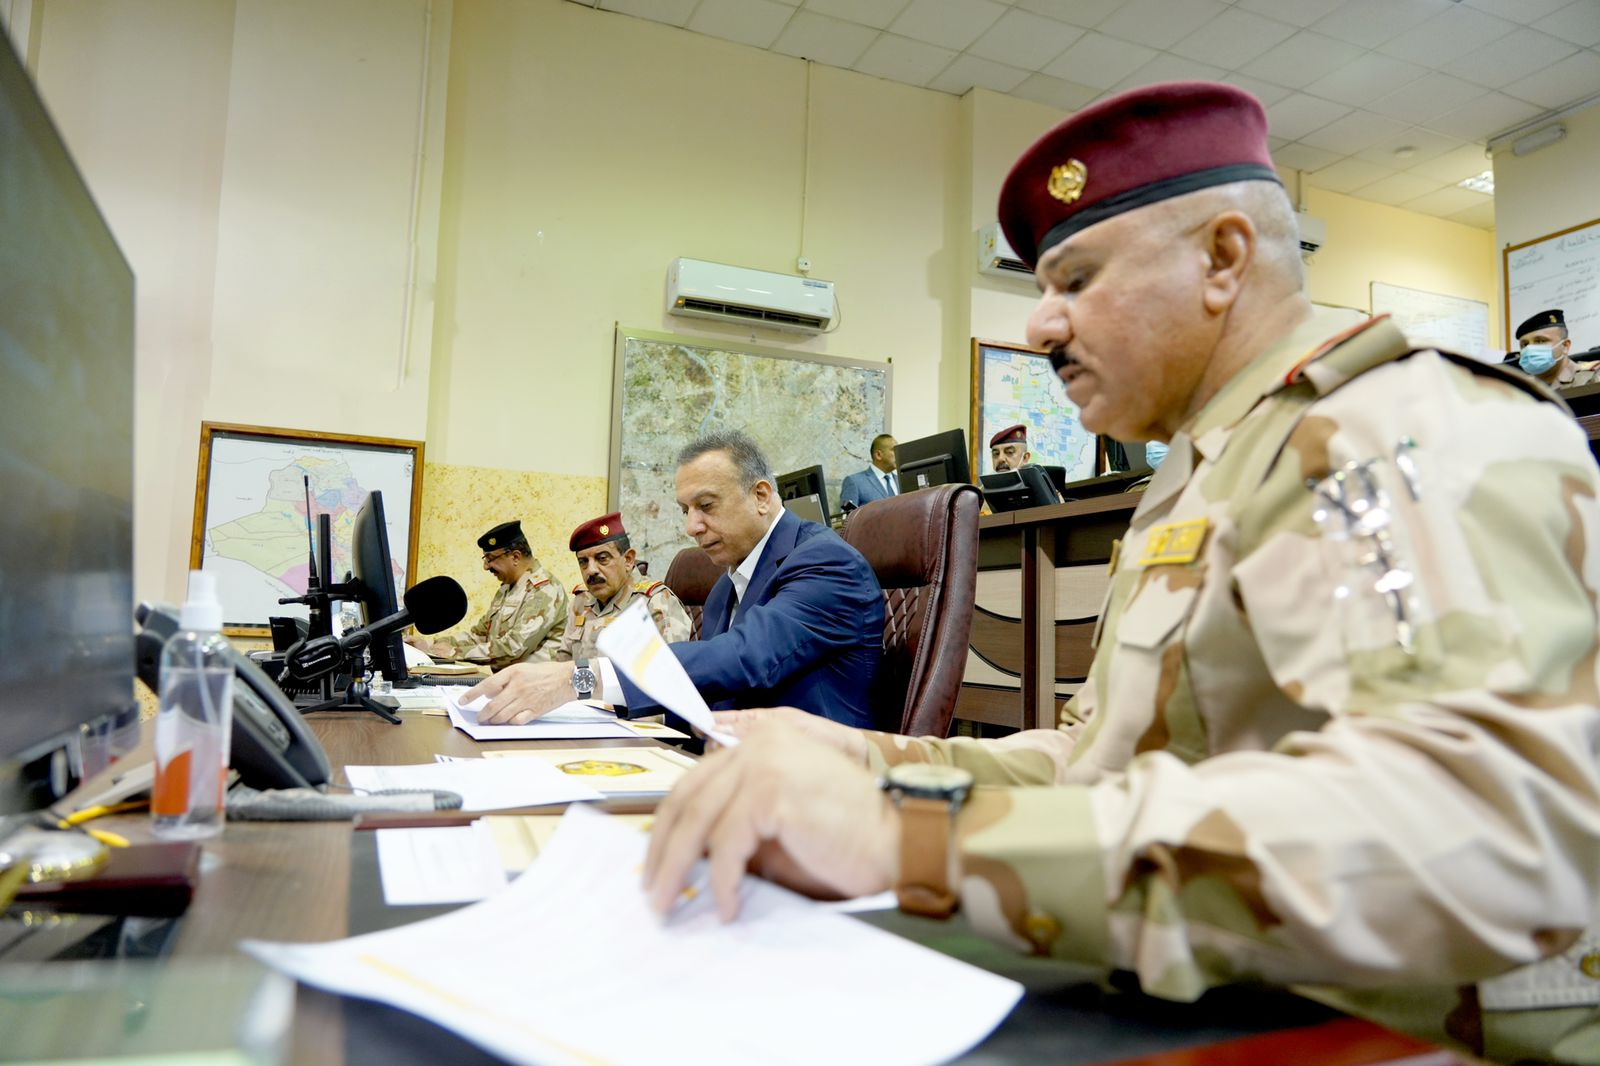 PM al-Kadhimi commends the security authorities efforts in securing the ballot boxes